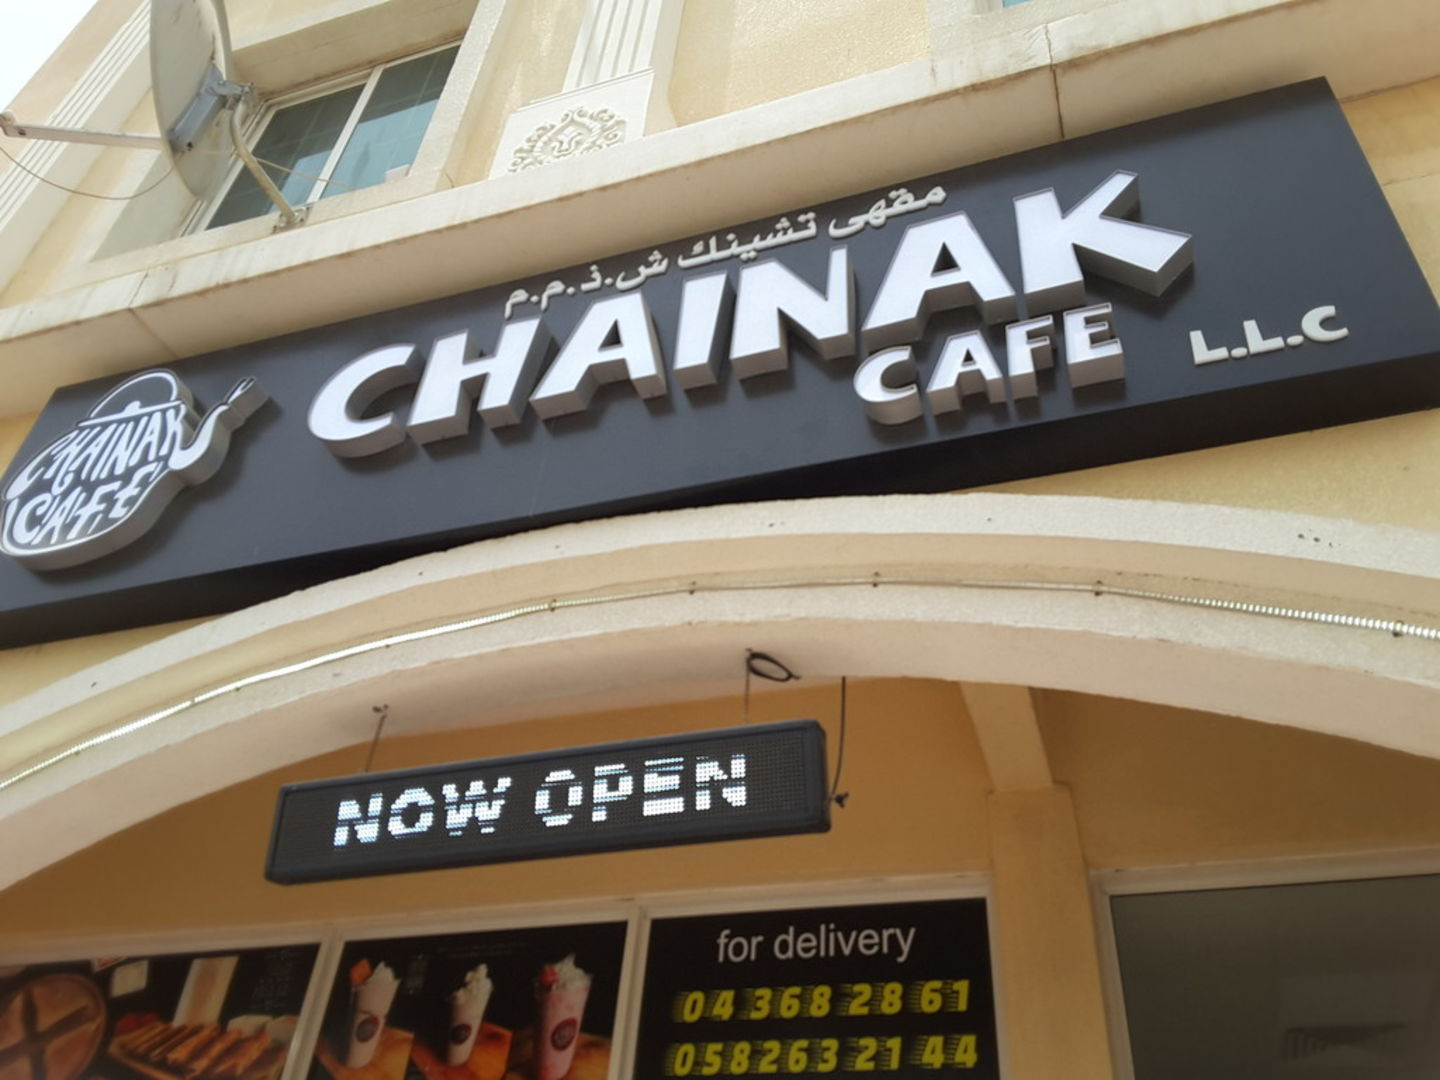 Walif-business-chainak-cafe